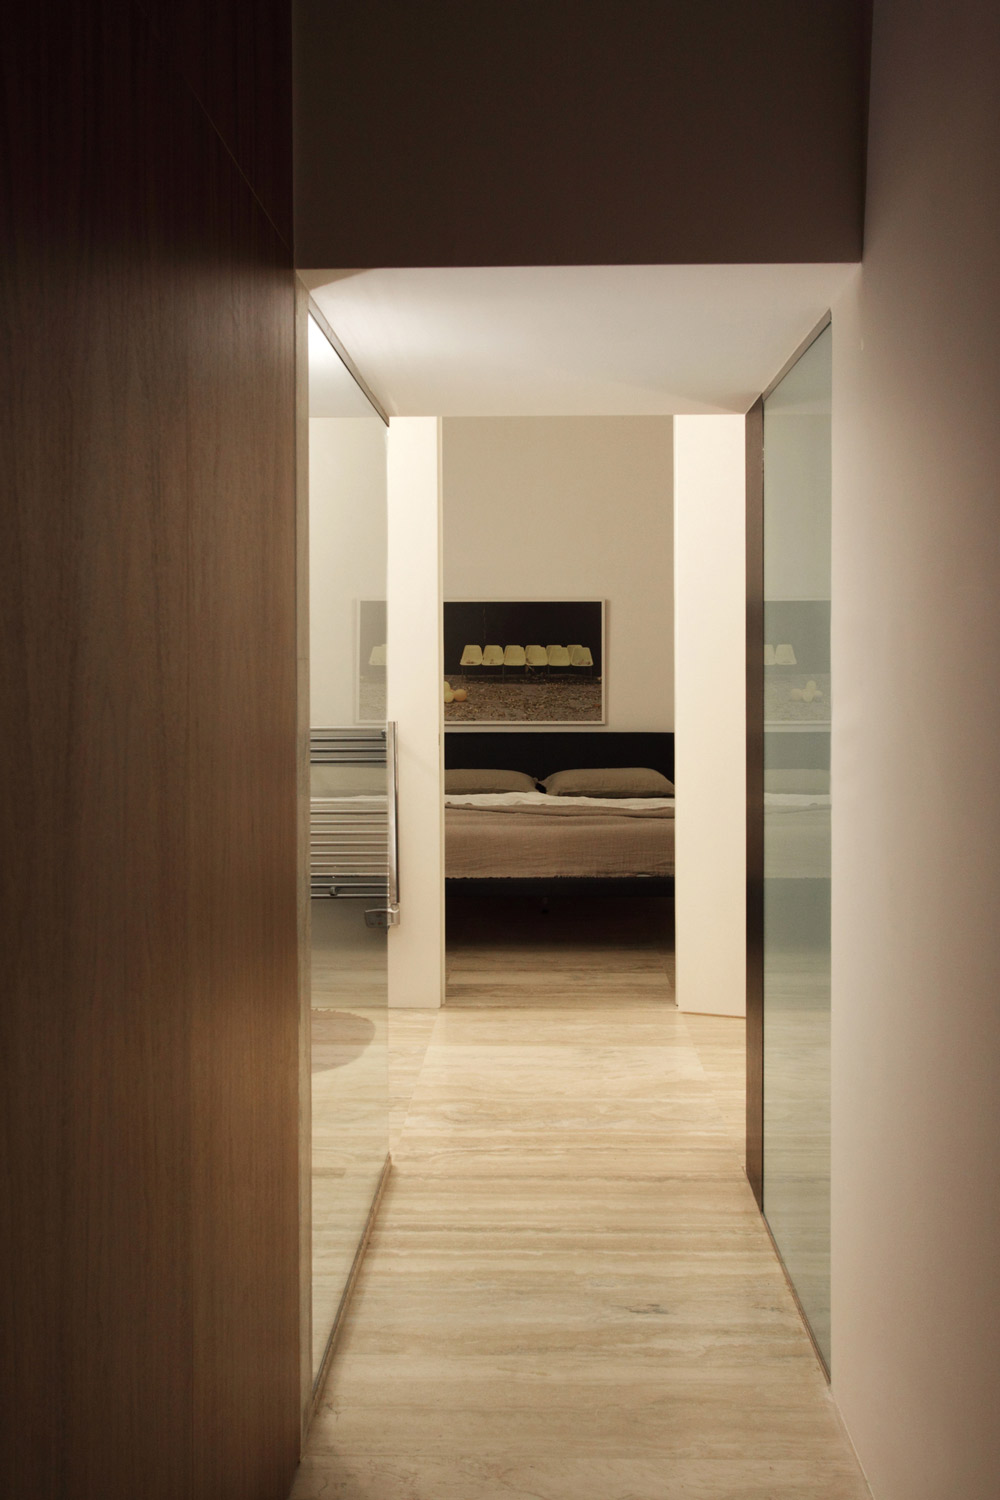 Bedroom, Hallway, Hanging Home in Naxxar, Malta by Chris Briffa Architects